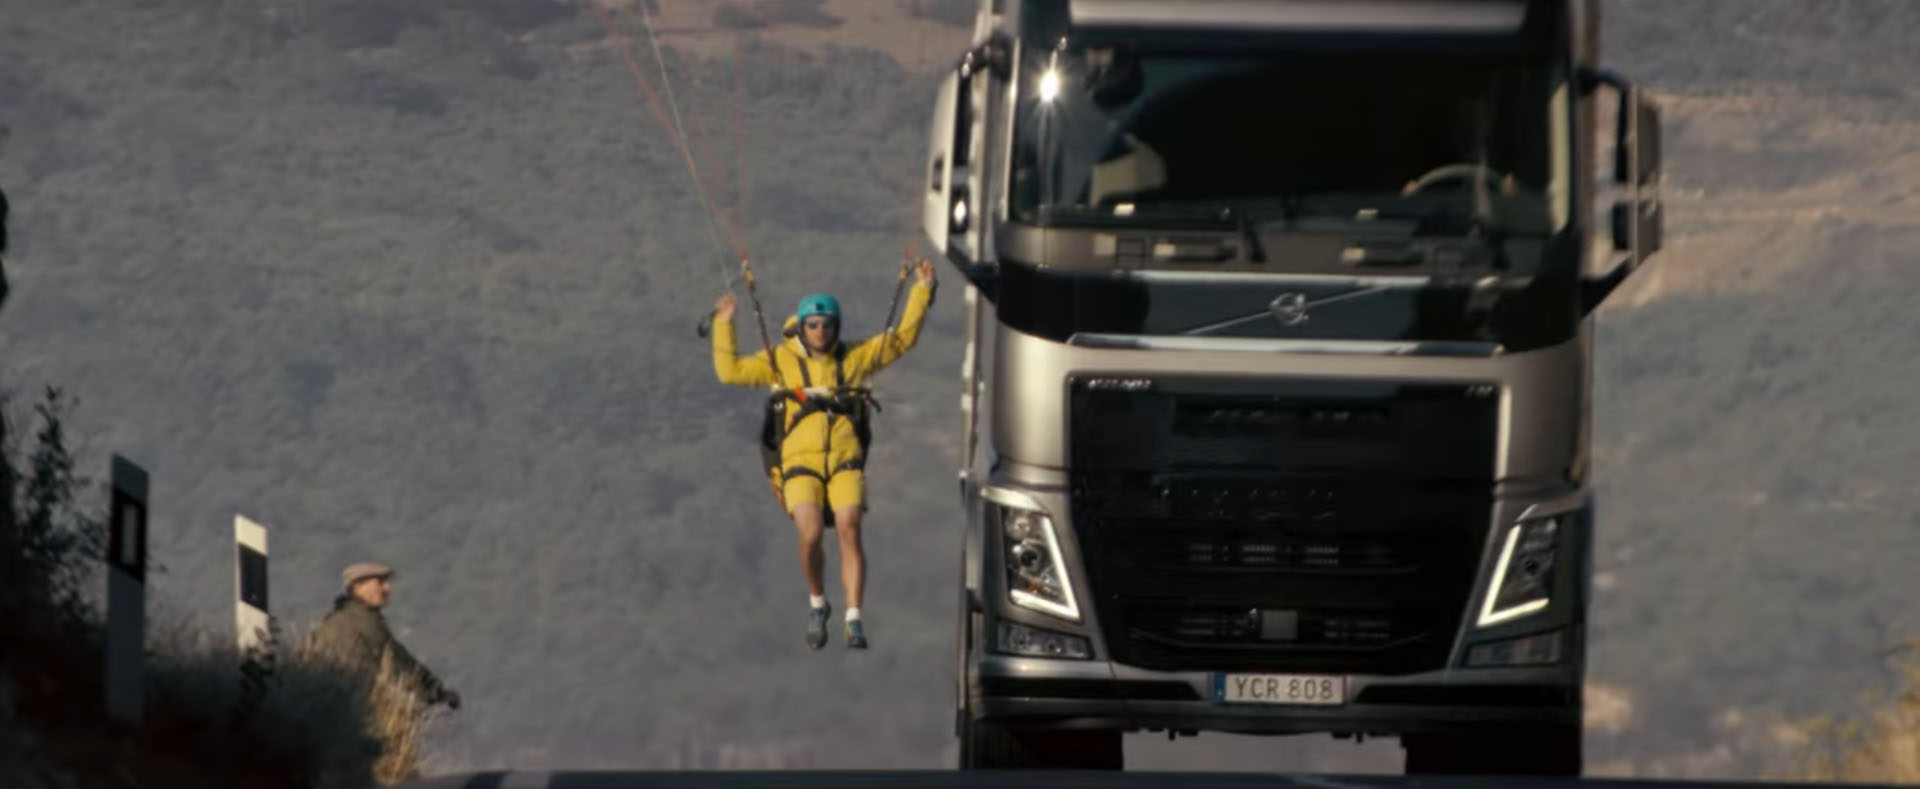 Volvo Trucks Pulls Another Publicity Stunt, Van Damme Nowhere to Be